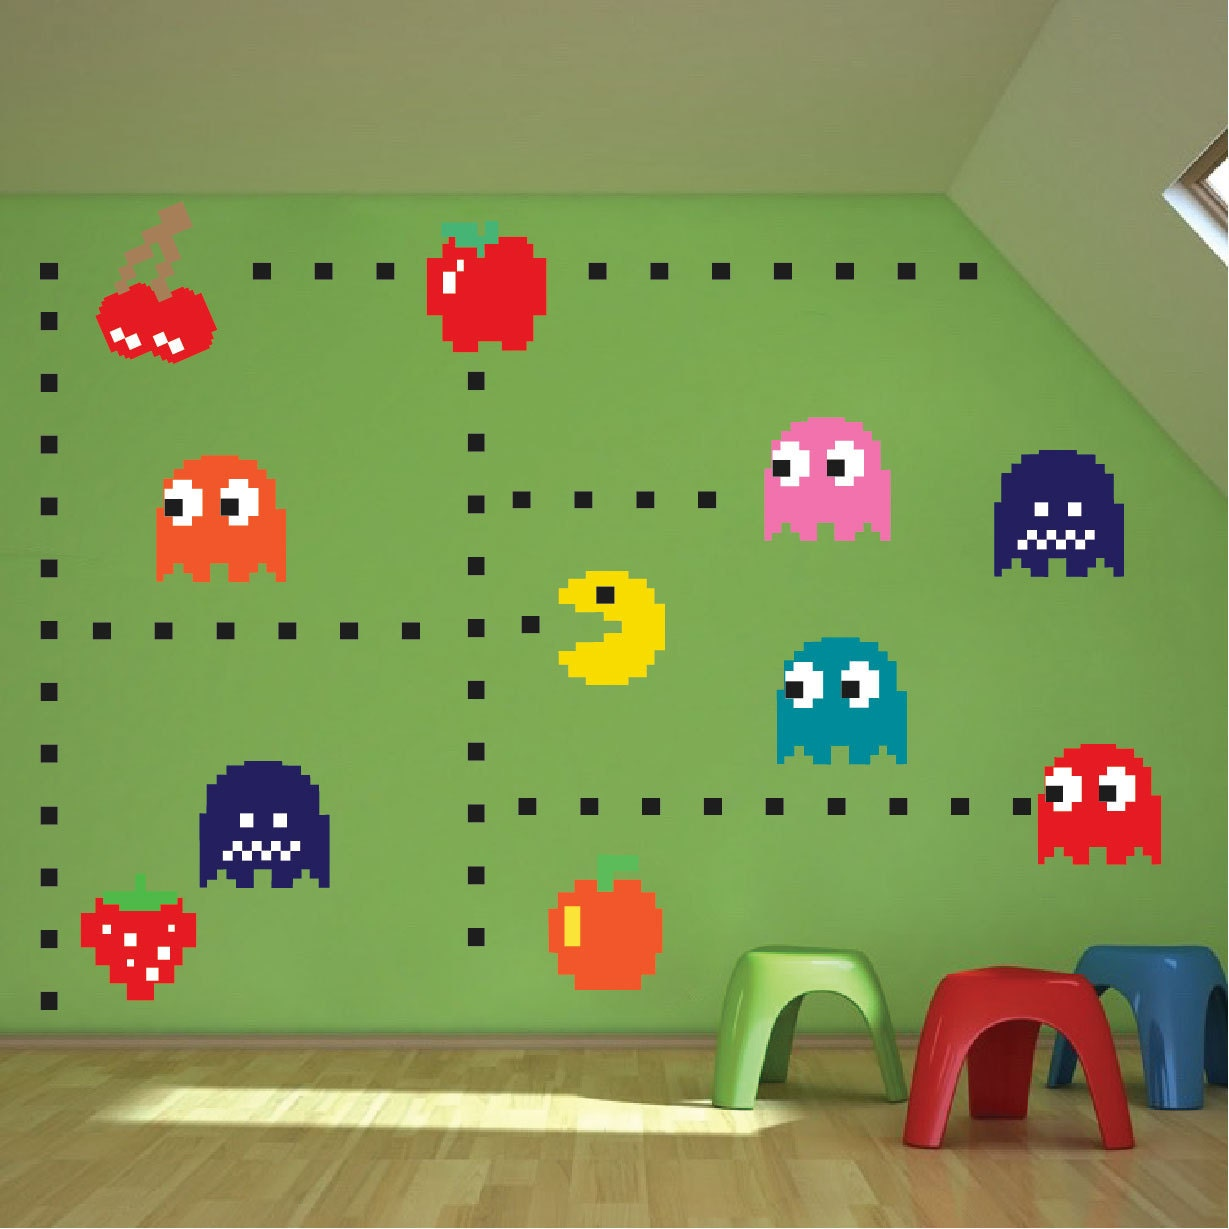 pac man decals atari wall decals pac man wall murals by primedecal. Black Bedroom Furniture Sets. Home Design Ideas